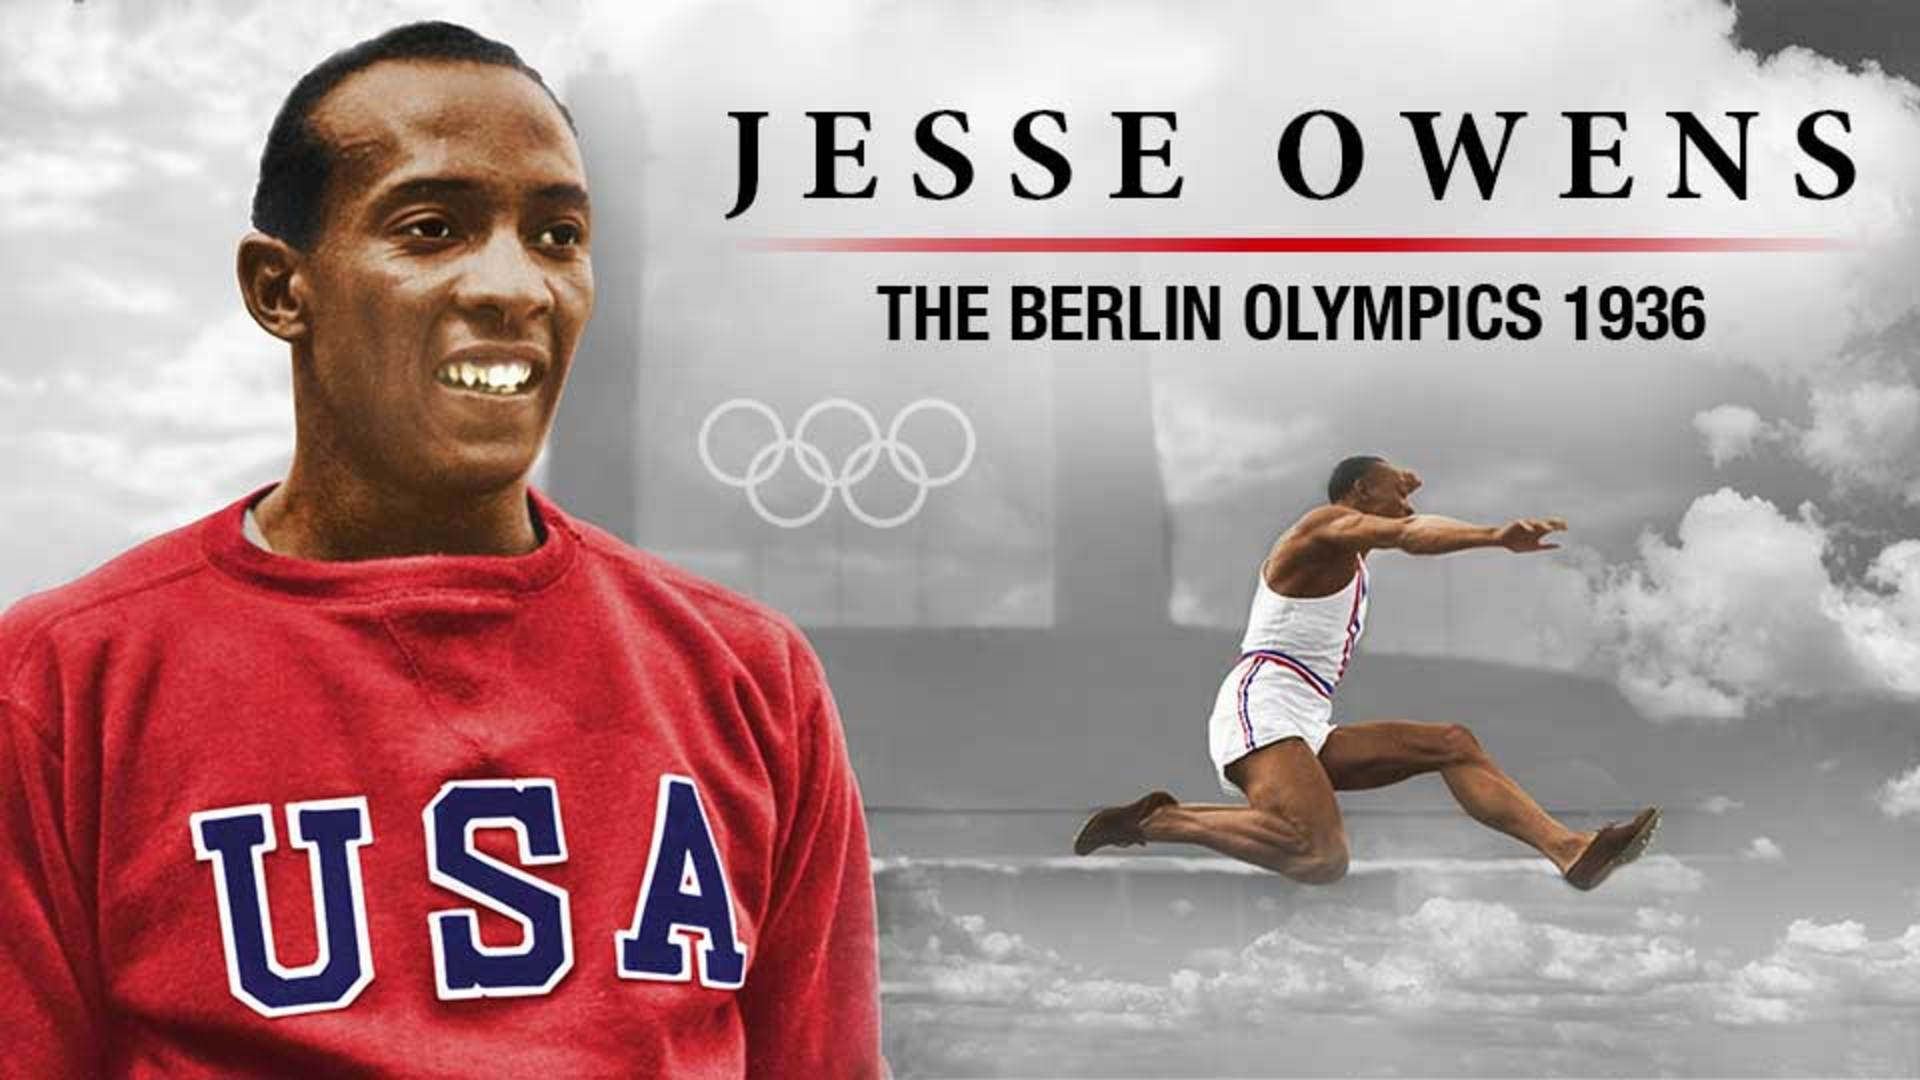 Jesse Owens at the Berlin Olympics in 1936 -